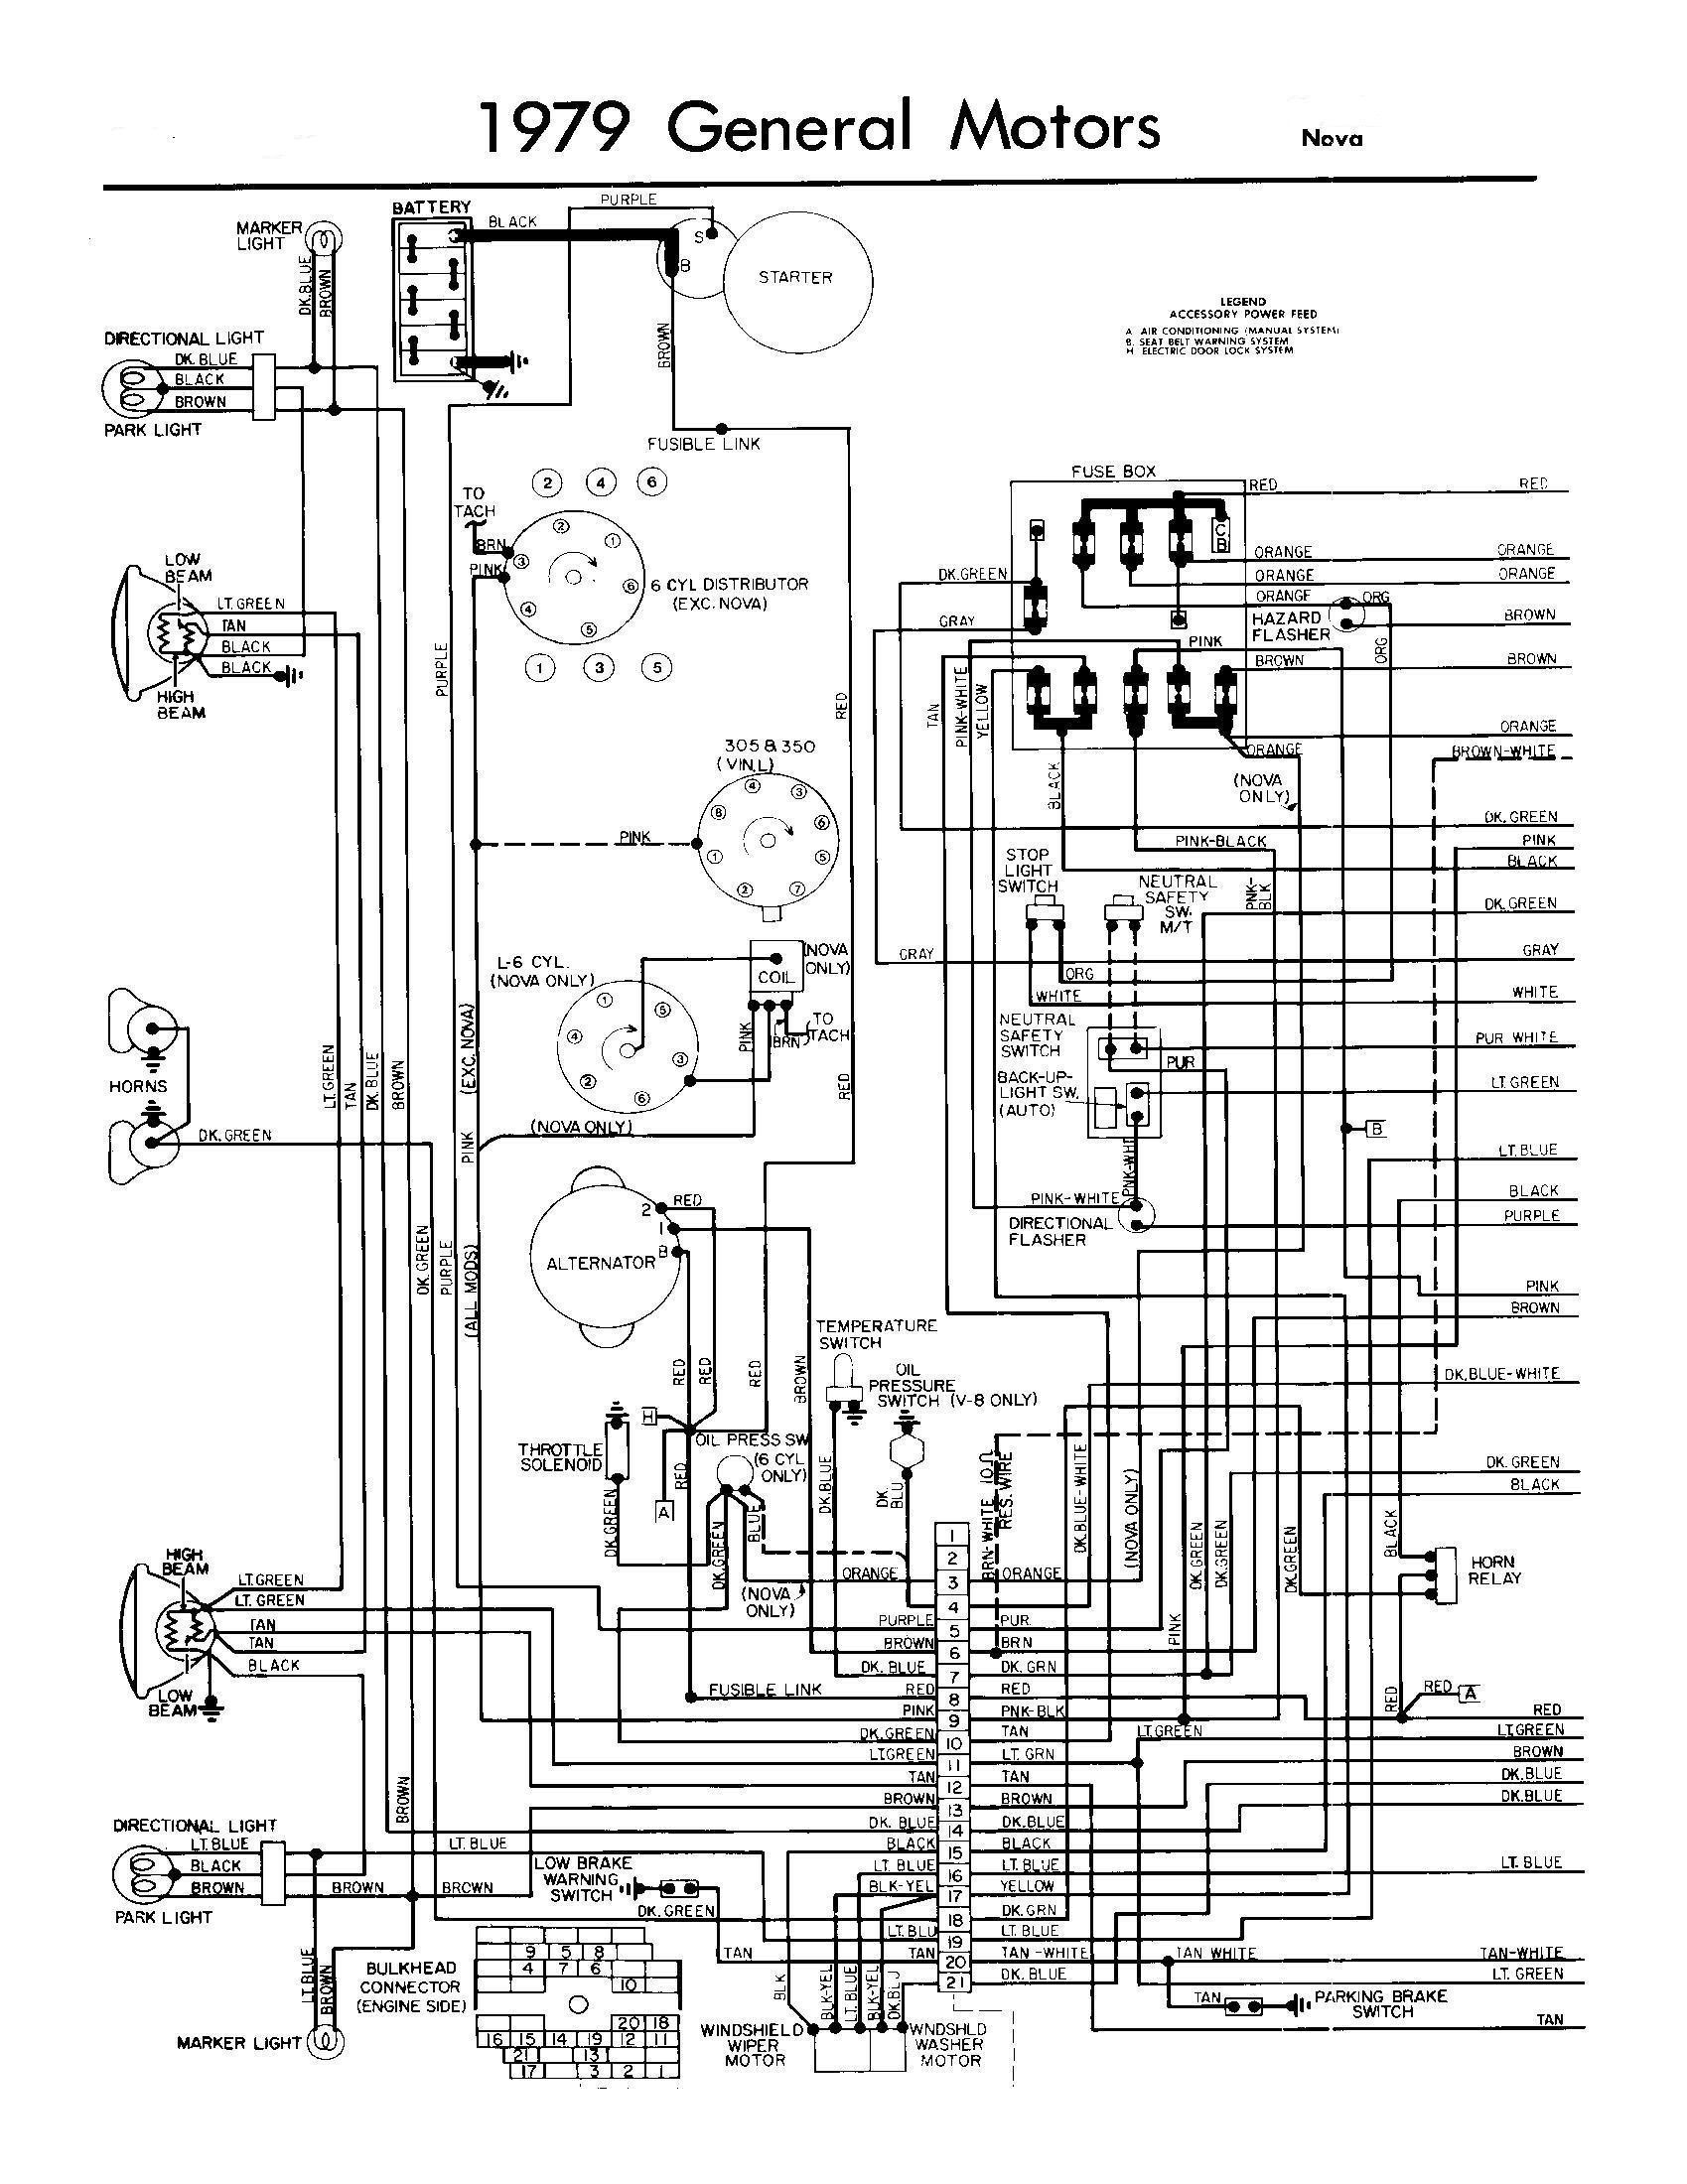 chevrolet cruze parts diagram caterpillar 3208 marine engine wiring diagram gallery 1977 chevrolet truck parts diagram #12